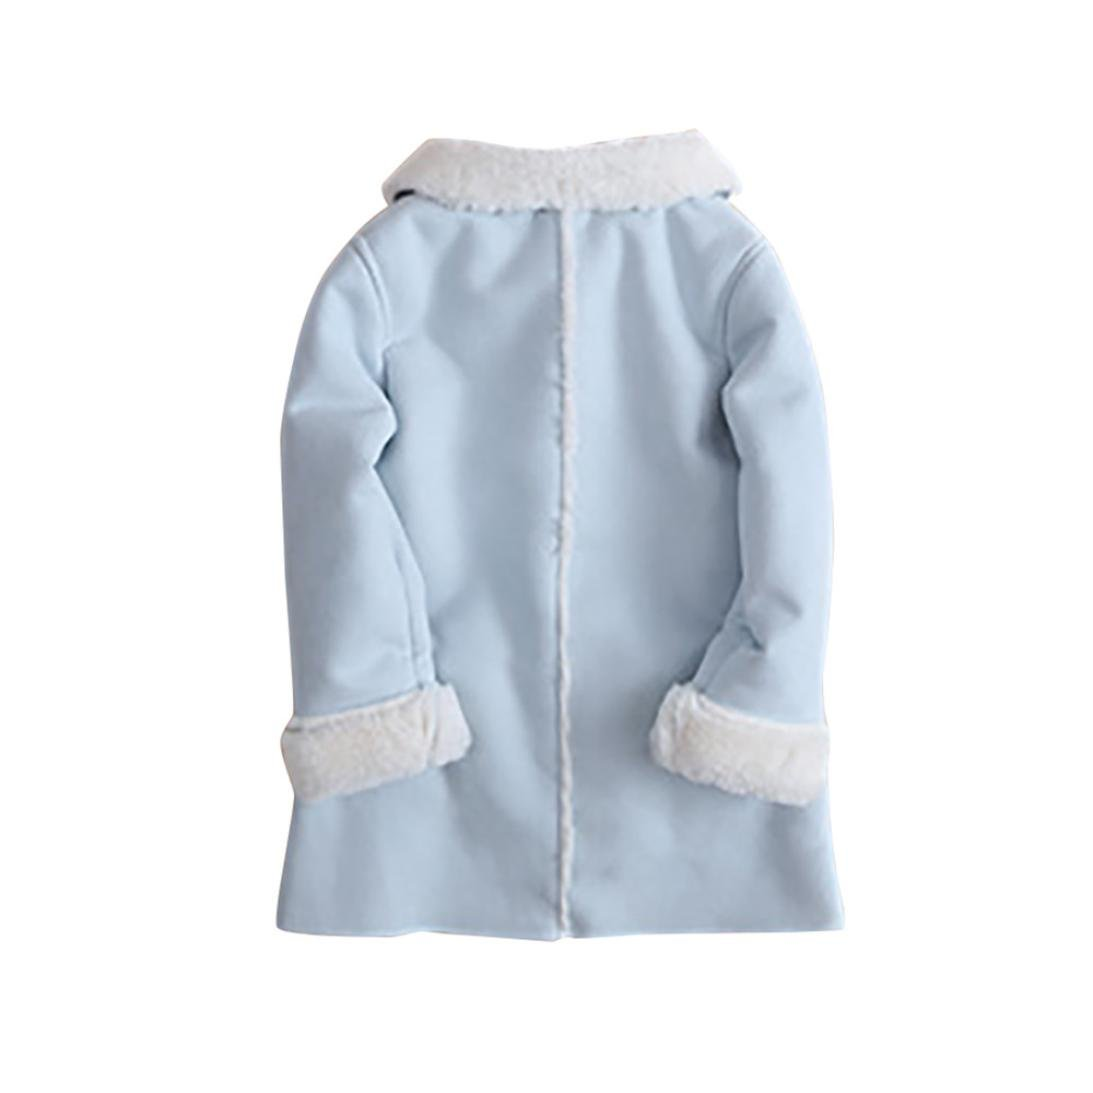 Franterd Baby Girls Winter Jacket Fur Collar Solid Warm Winter Thickening Fur Inside Coats (Blue, 3T) by Franterd (Image #5)